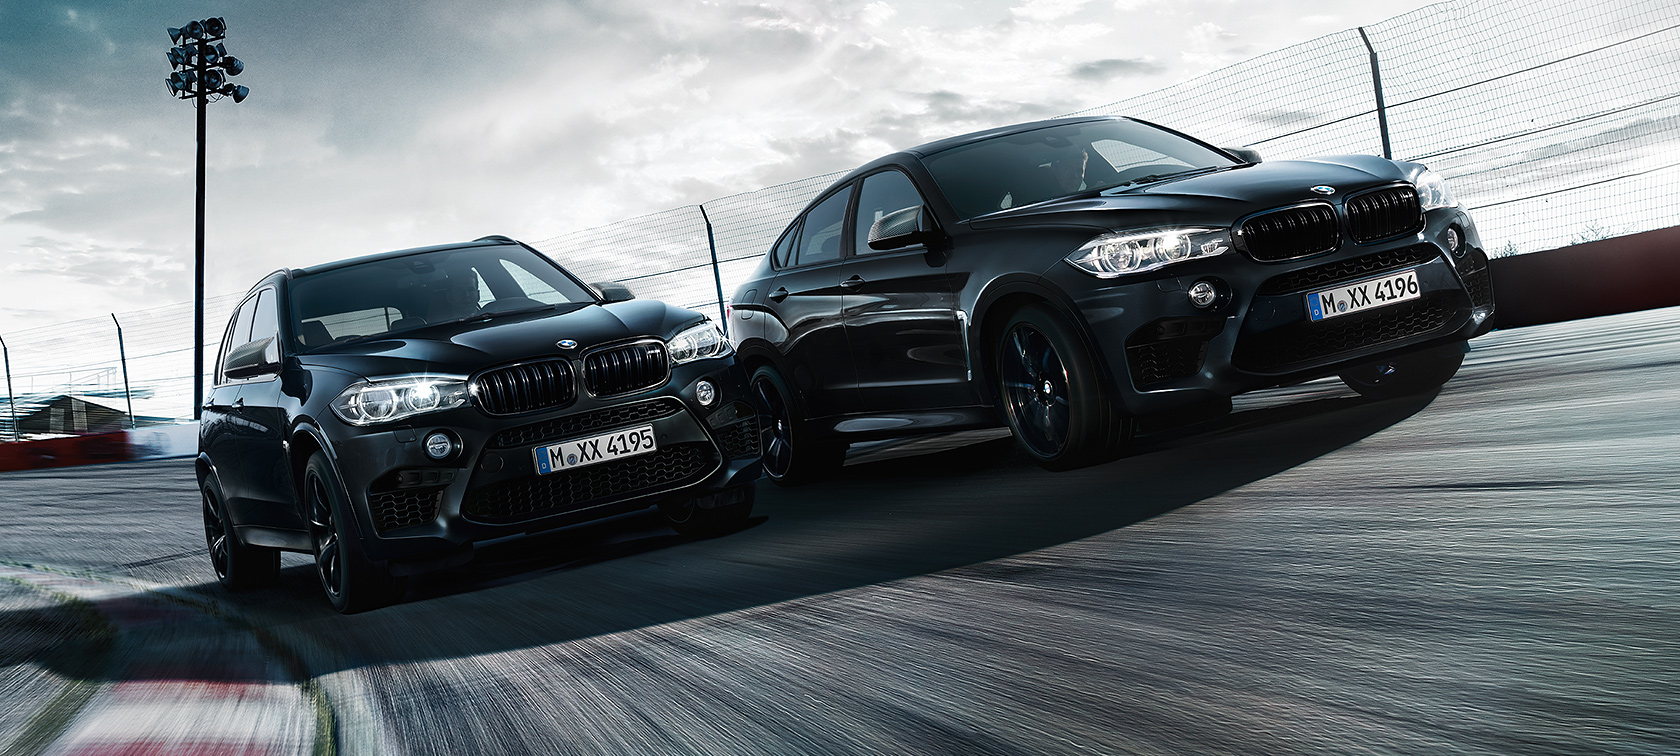 Bmw X5m And Bmw X6m As New Black Fire Edition